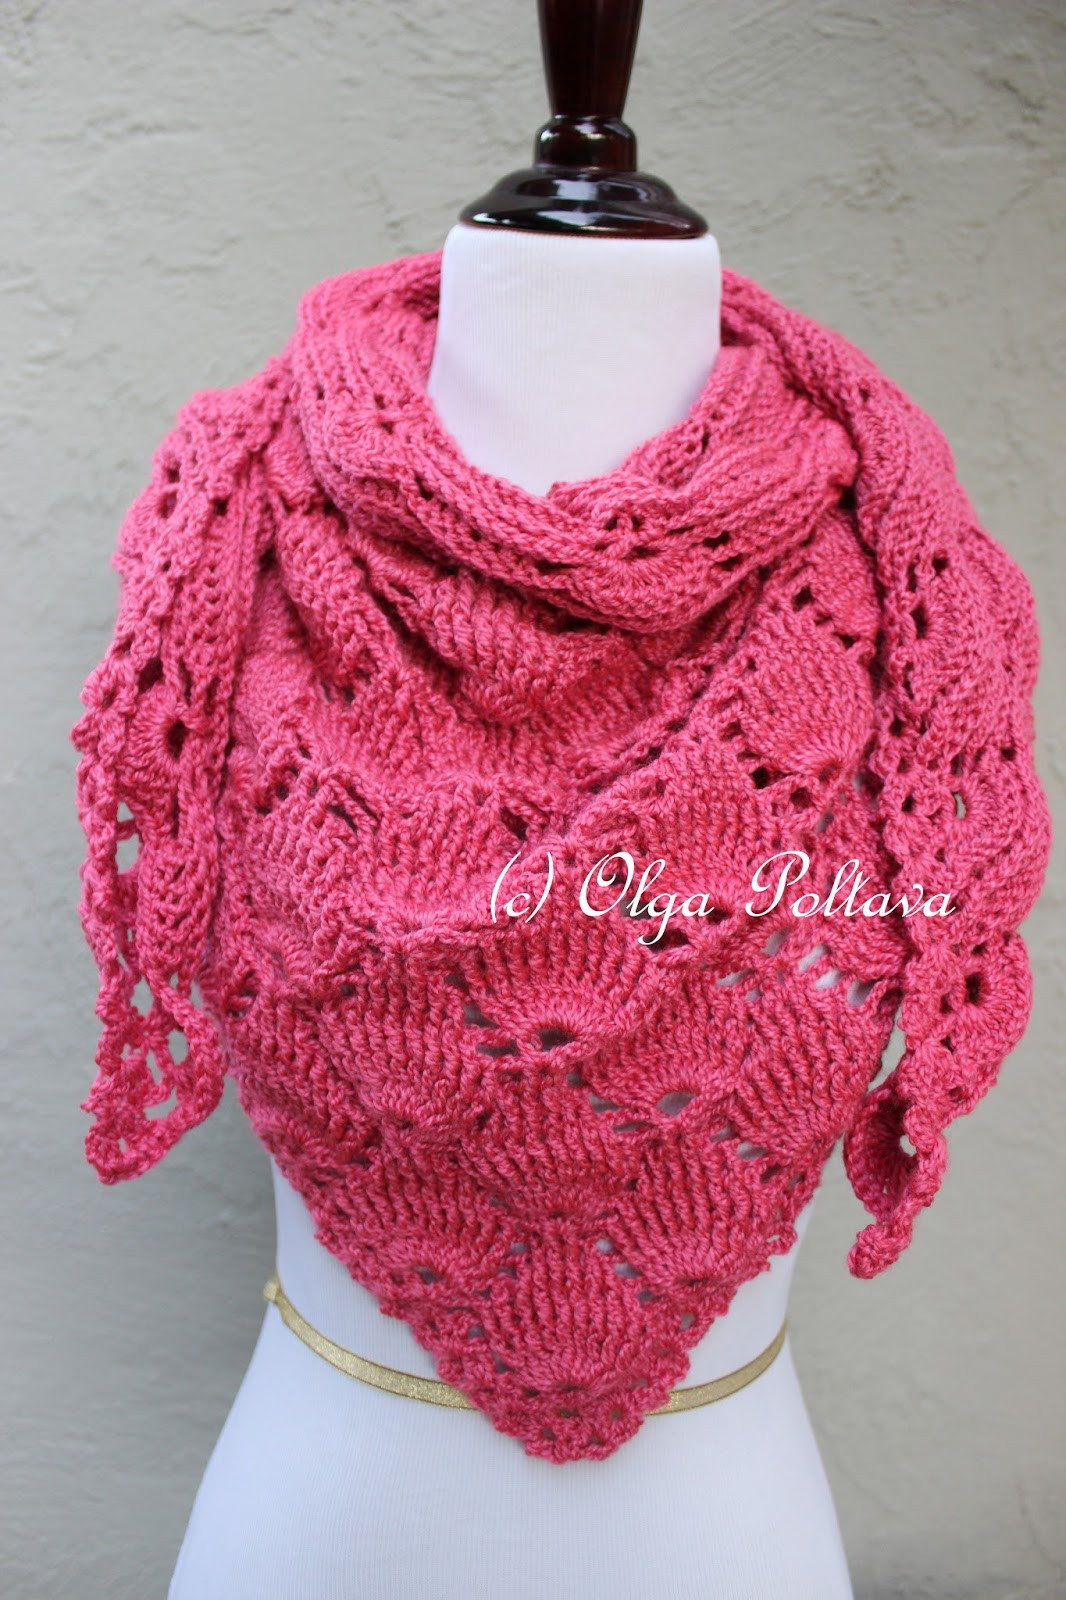 Crochet Thread Patterns Best Of Lacy Crochet Bright Pink Shells Crochet Scarf Of Superb 47 Pics Crochet Thread Patterns